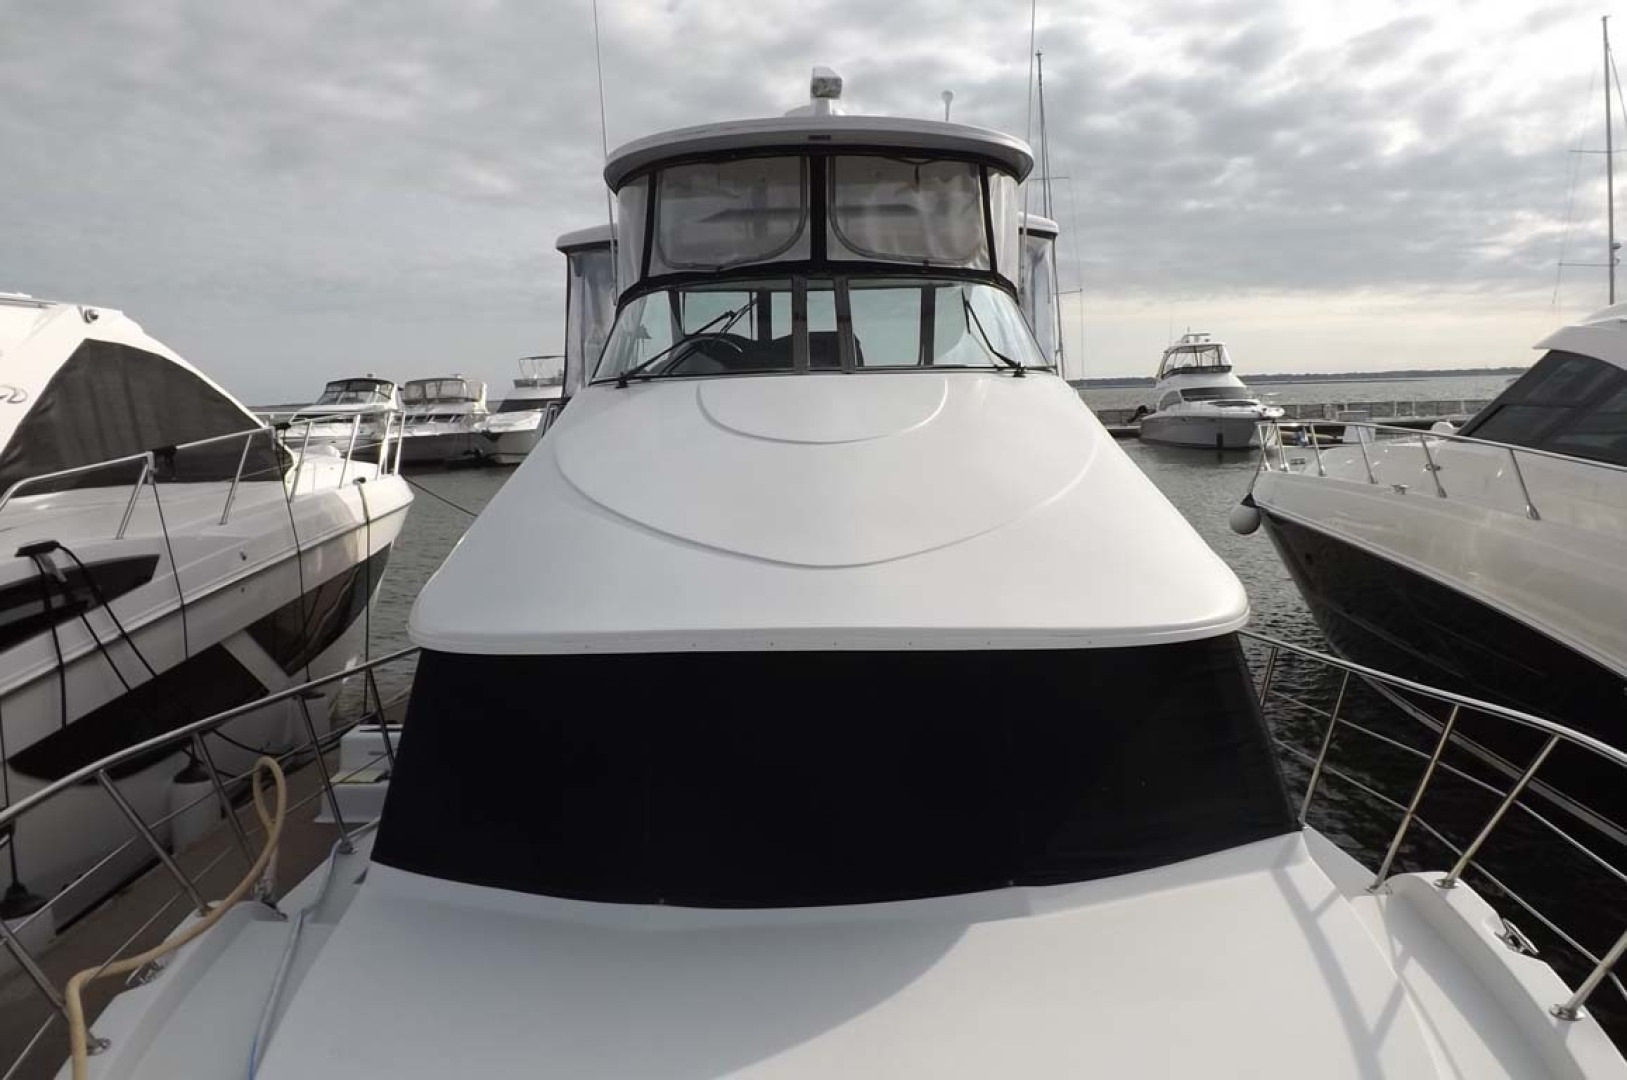 Bluewater Yachts-5200 2006 -Mount Pleasant-South Carolina-United States-Flybridge viewed from Foredeck-1412960 | Thumbnail